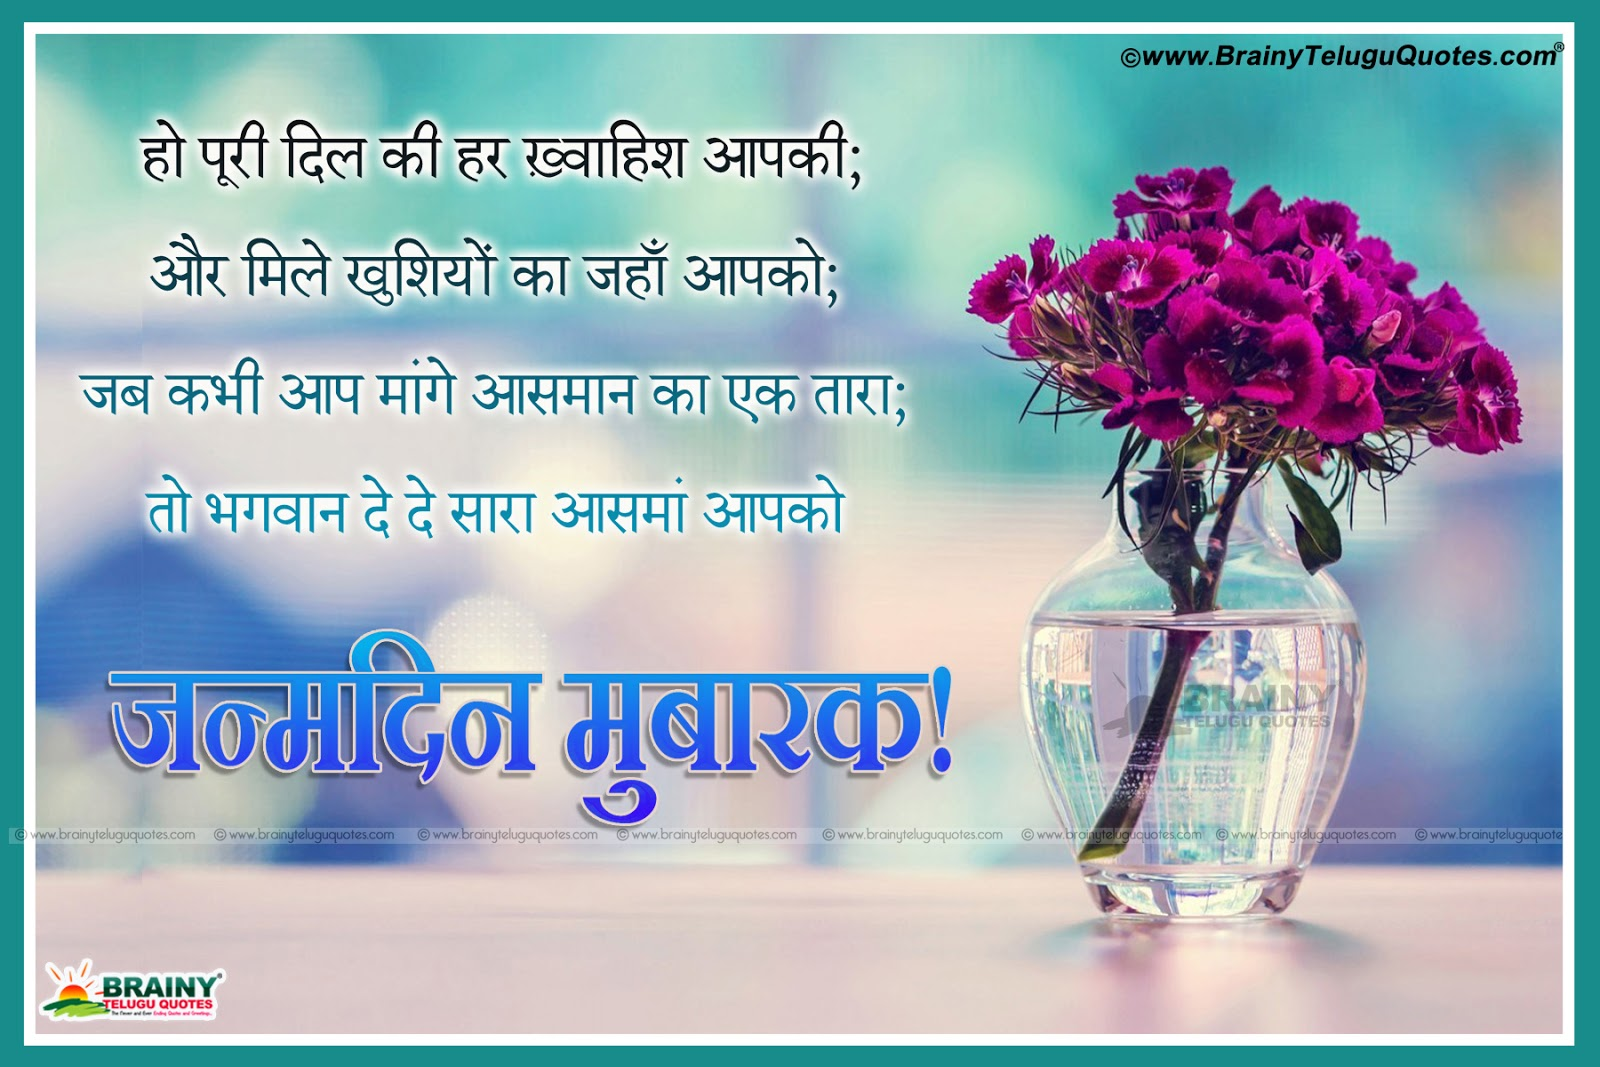 Happy Birthday Quotes In Hindi: Heart Touching Birthday Wishes For Best Friend In Hindi